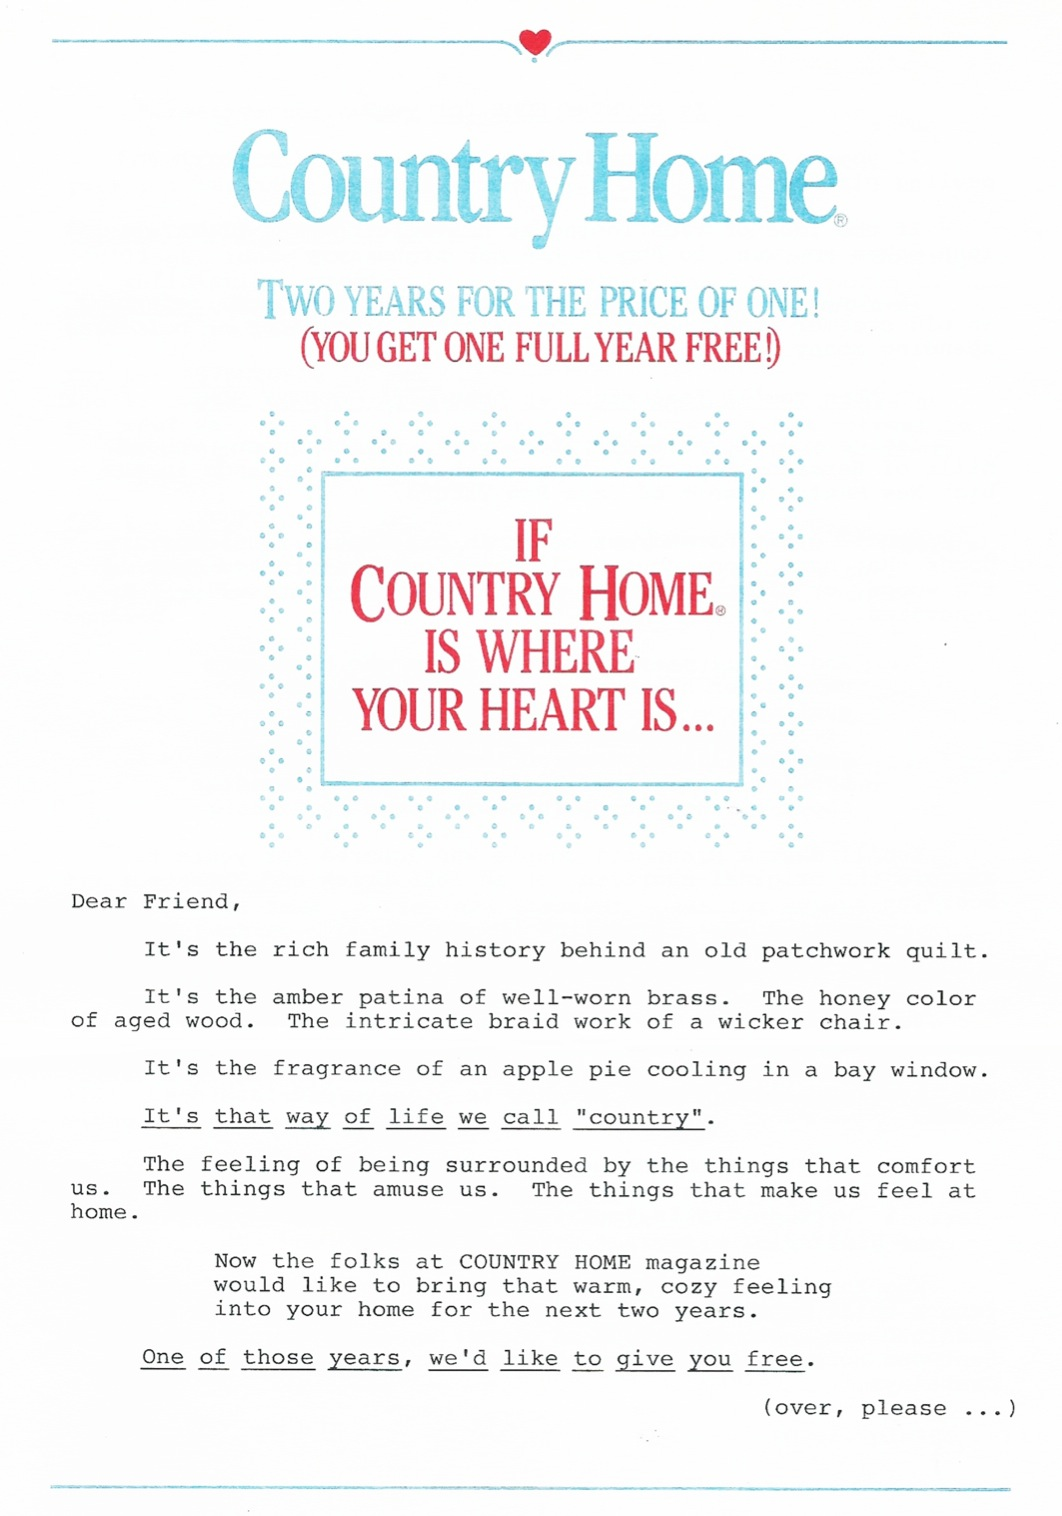 image of Country Home direct mail sales letter page 1